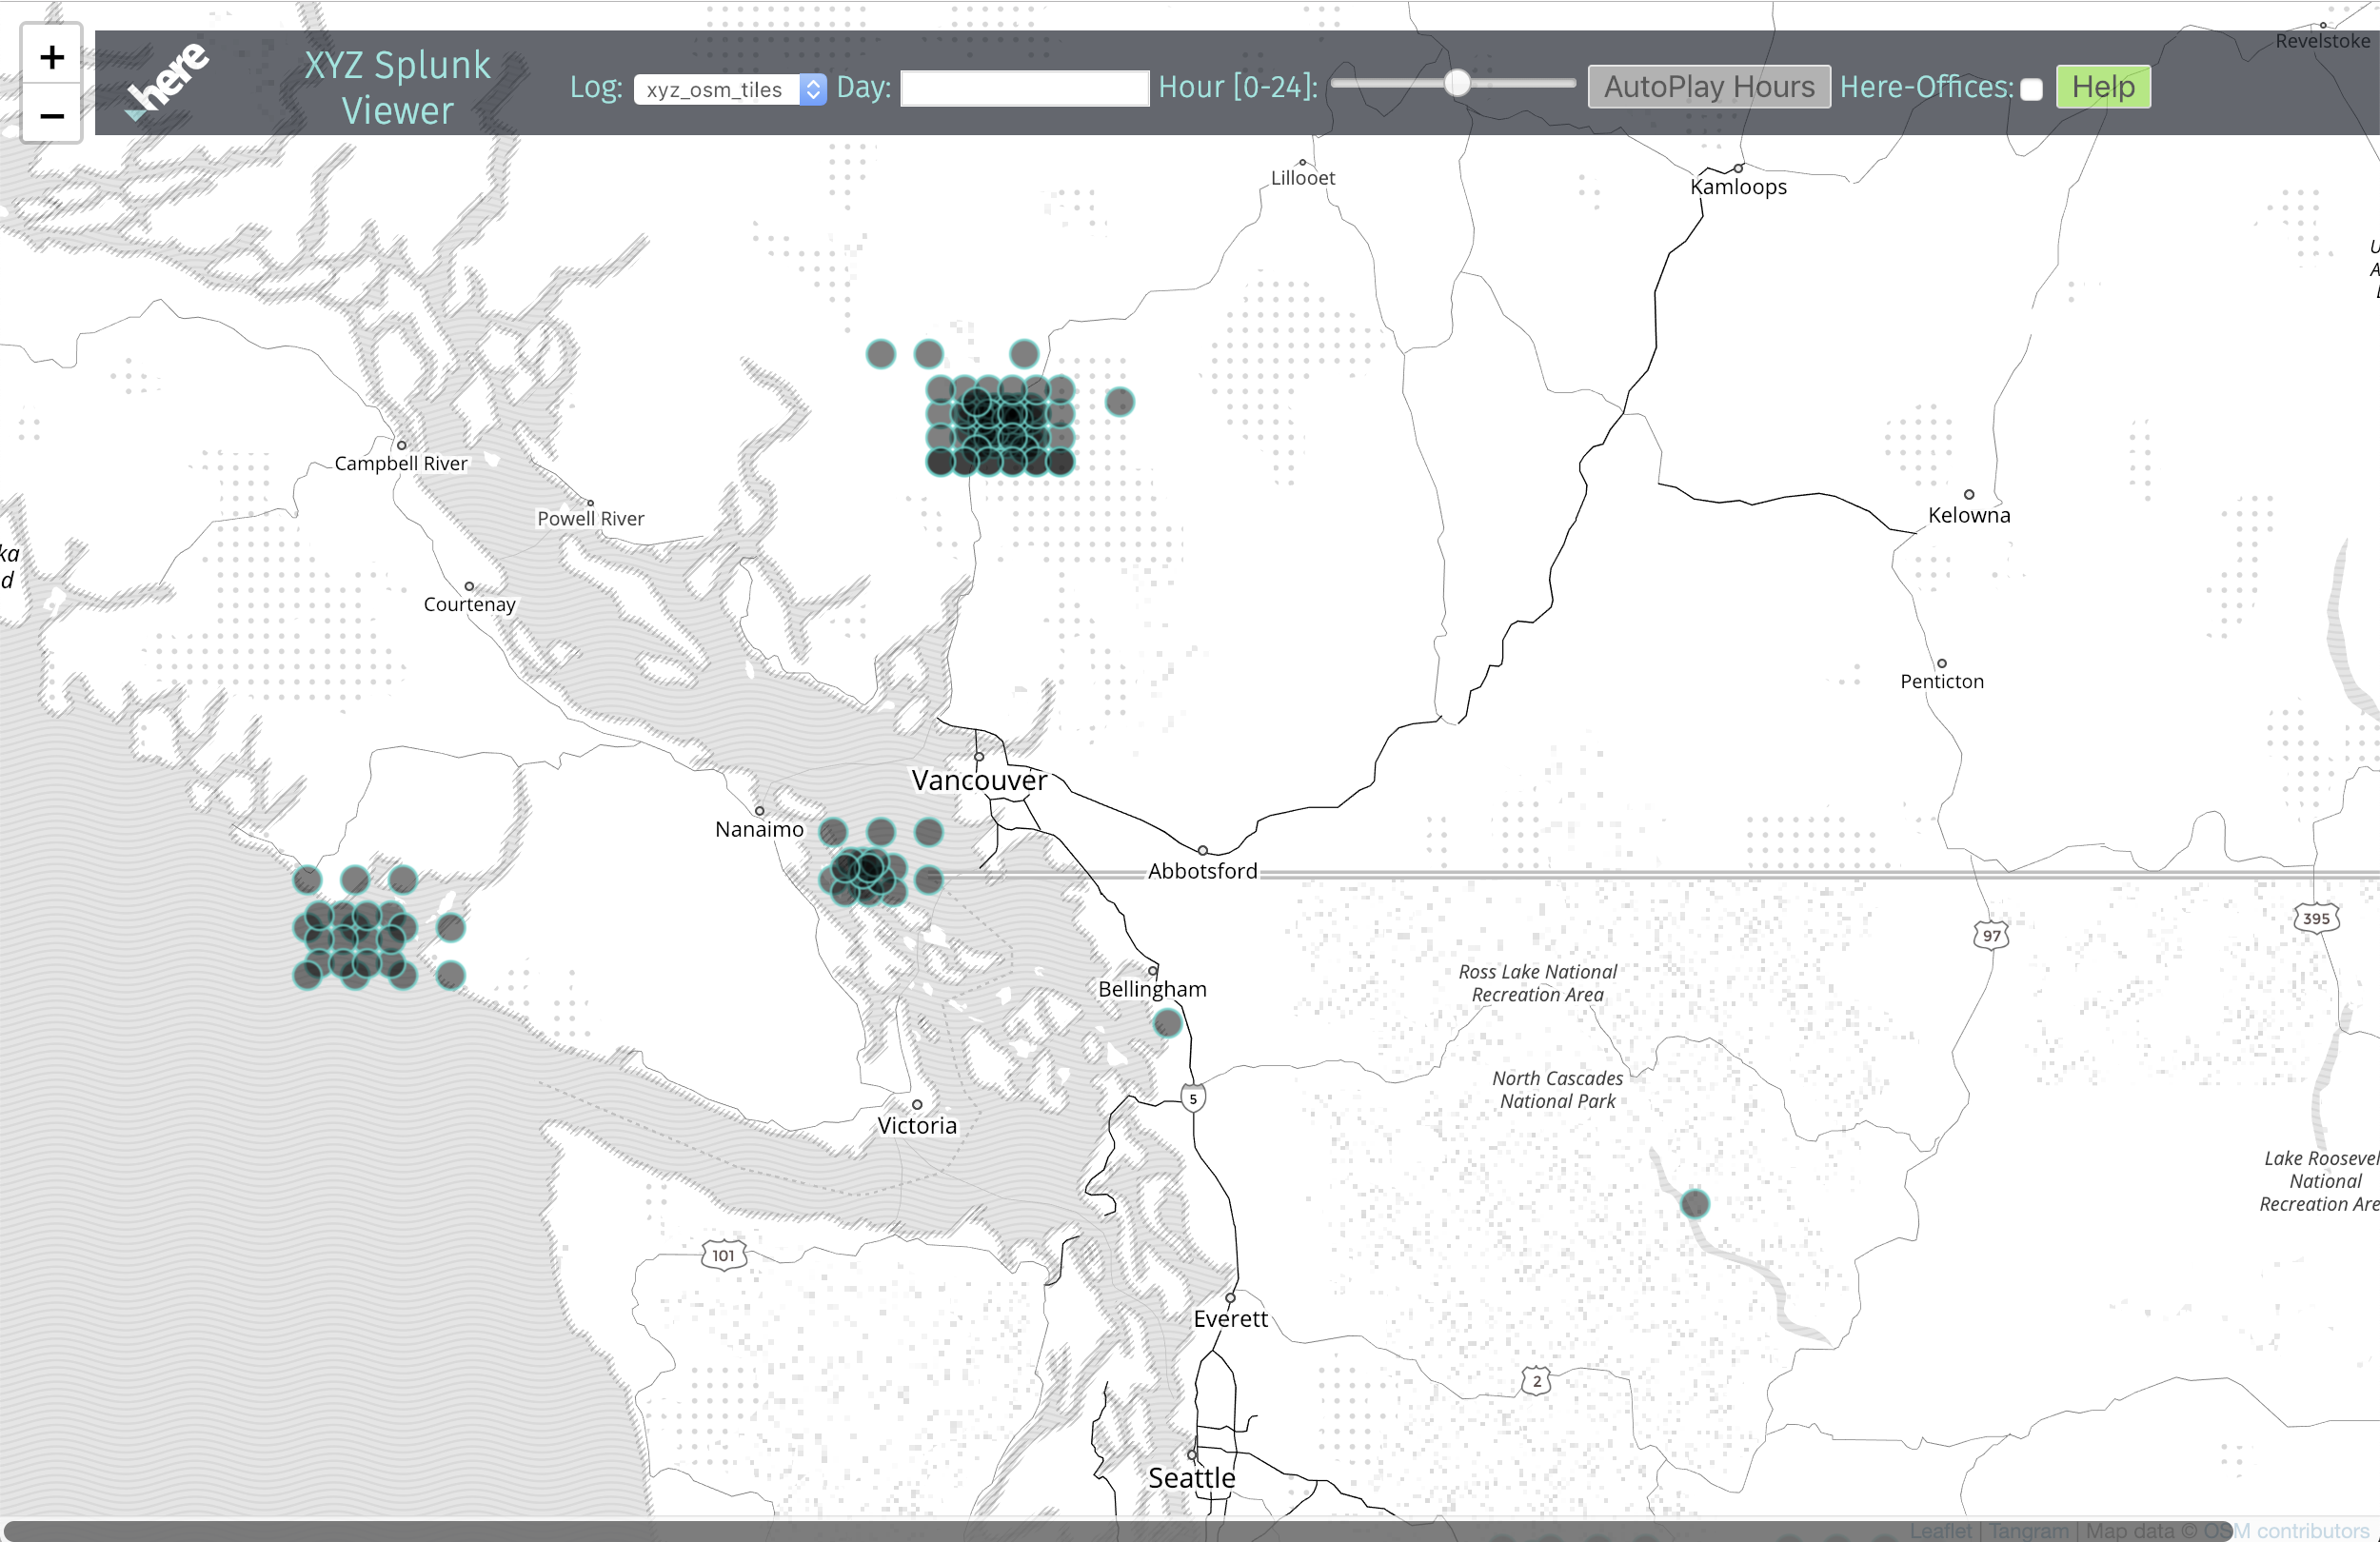 Visualizing Service Usage from Splunk Logs on a Map - HERE